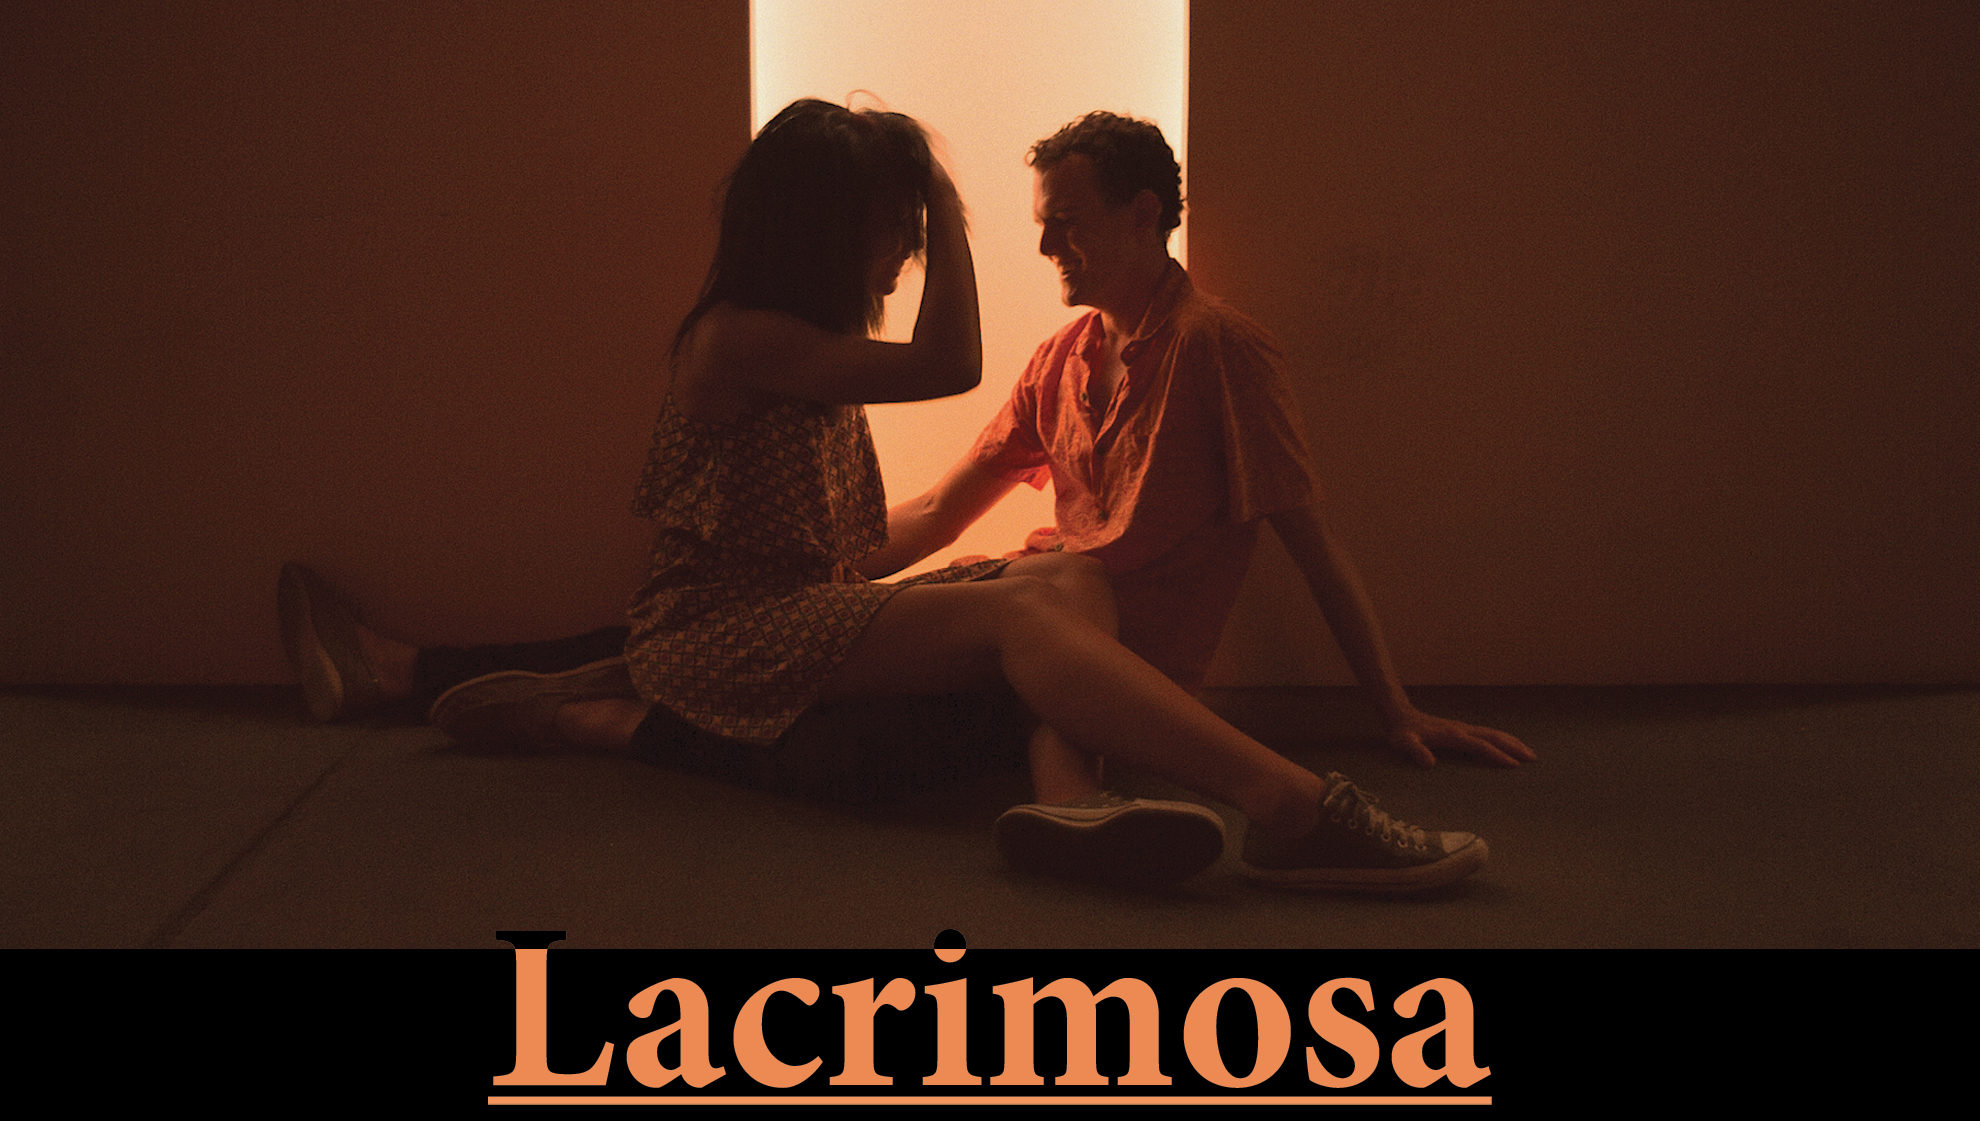 Lacrimosa Poster